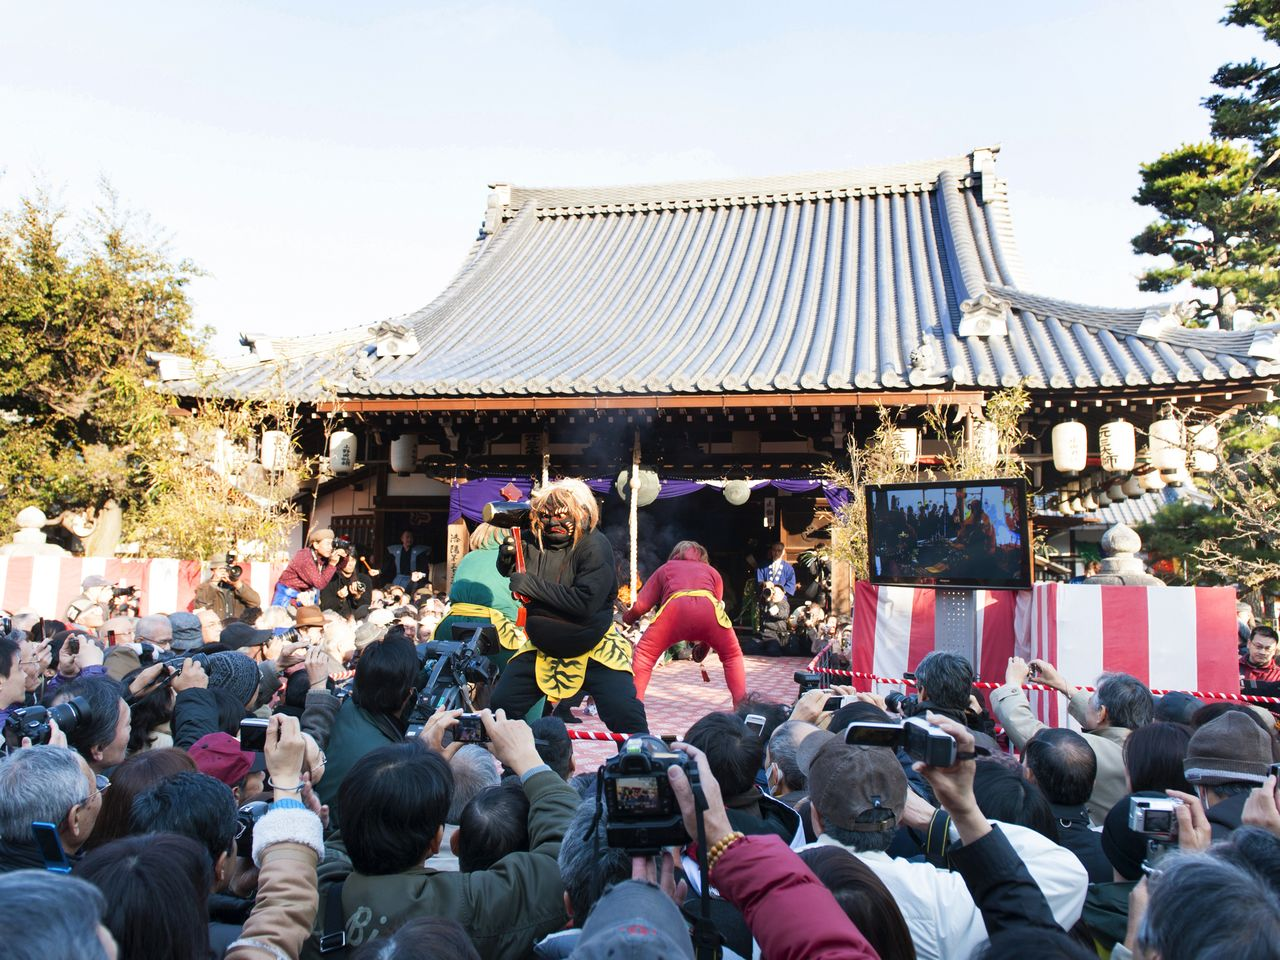 The stage where the <em>oni hōraku</em> ritual takes place is surrounded by eager crowds with their cameras.